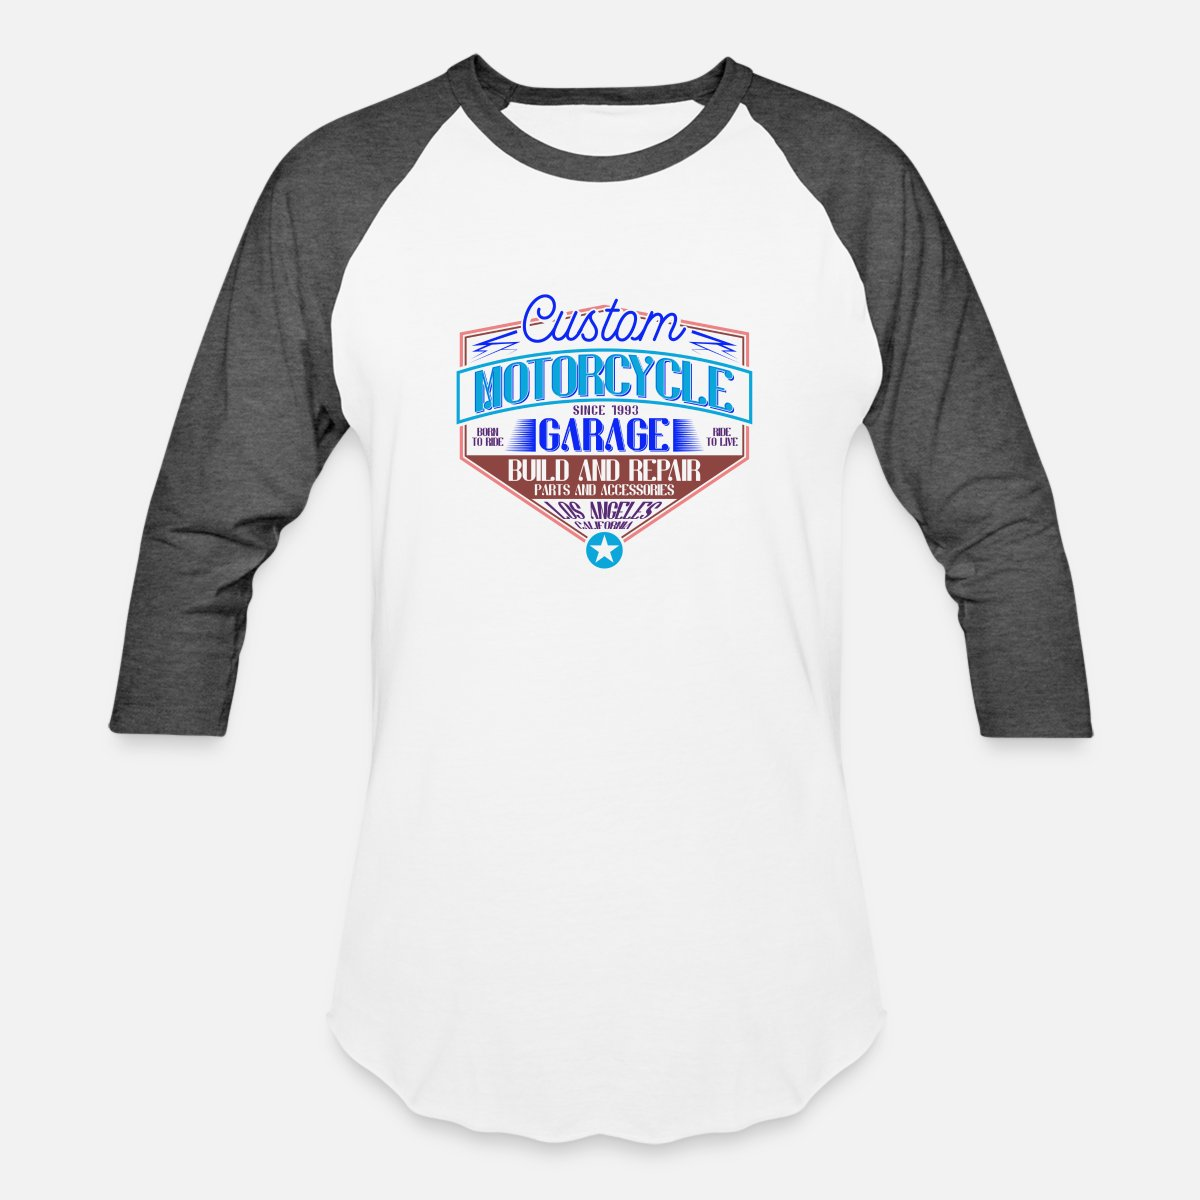 Motorcycle Repair T Shirt – EDGE Engineering and Consulting